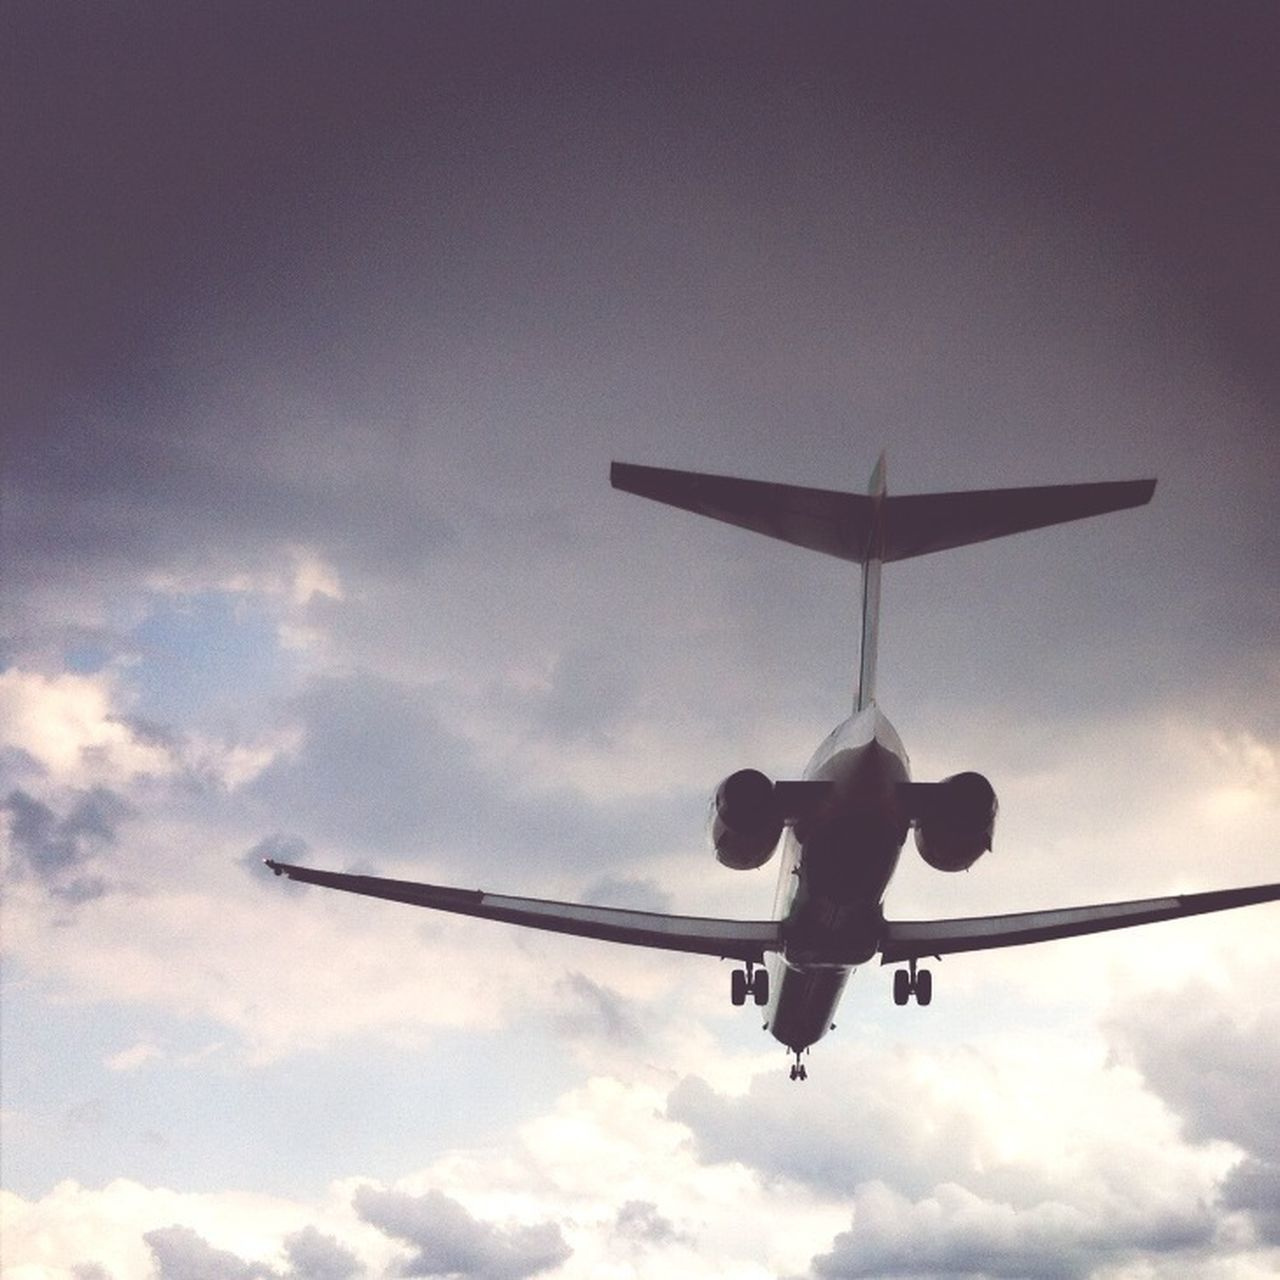 View of airplane in flight against clouds